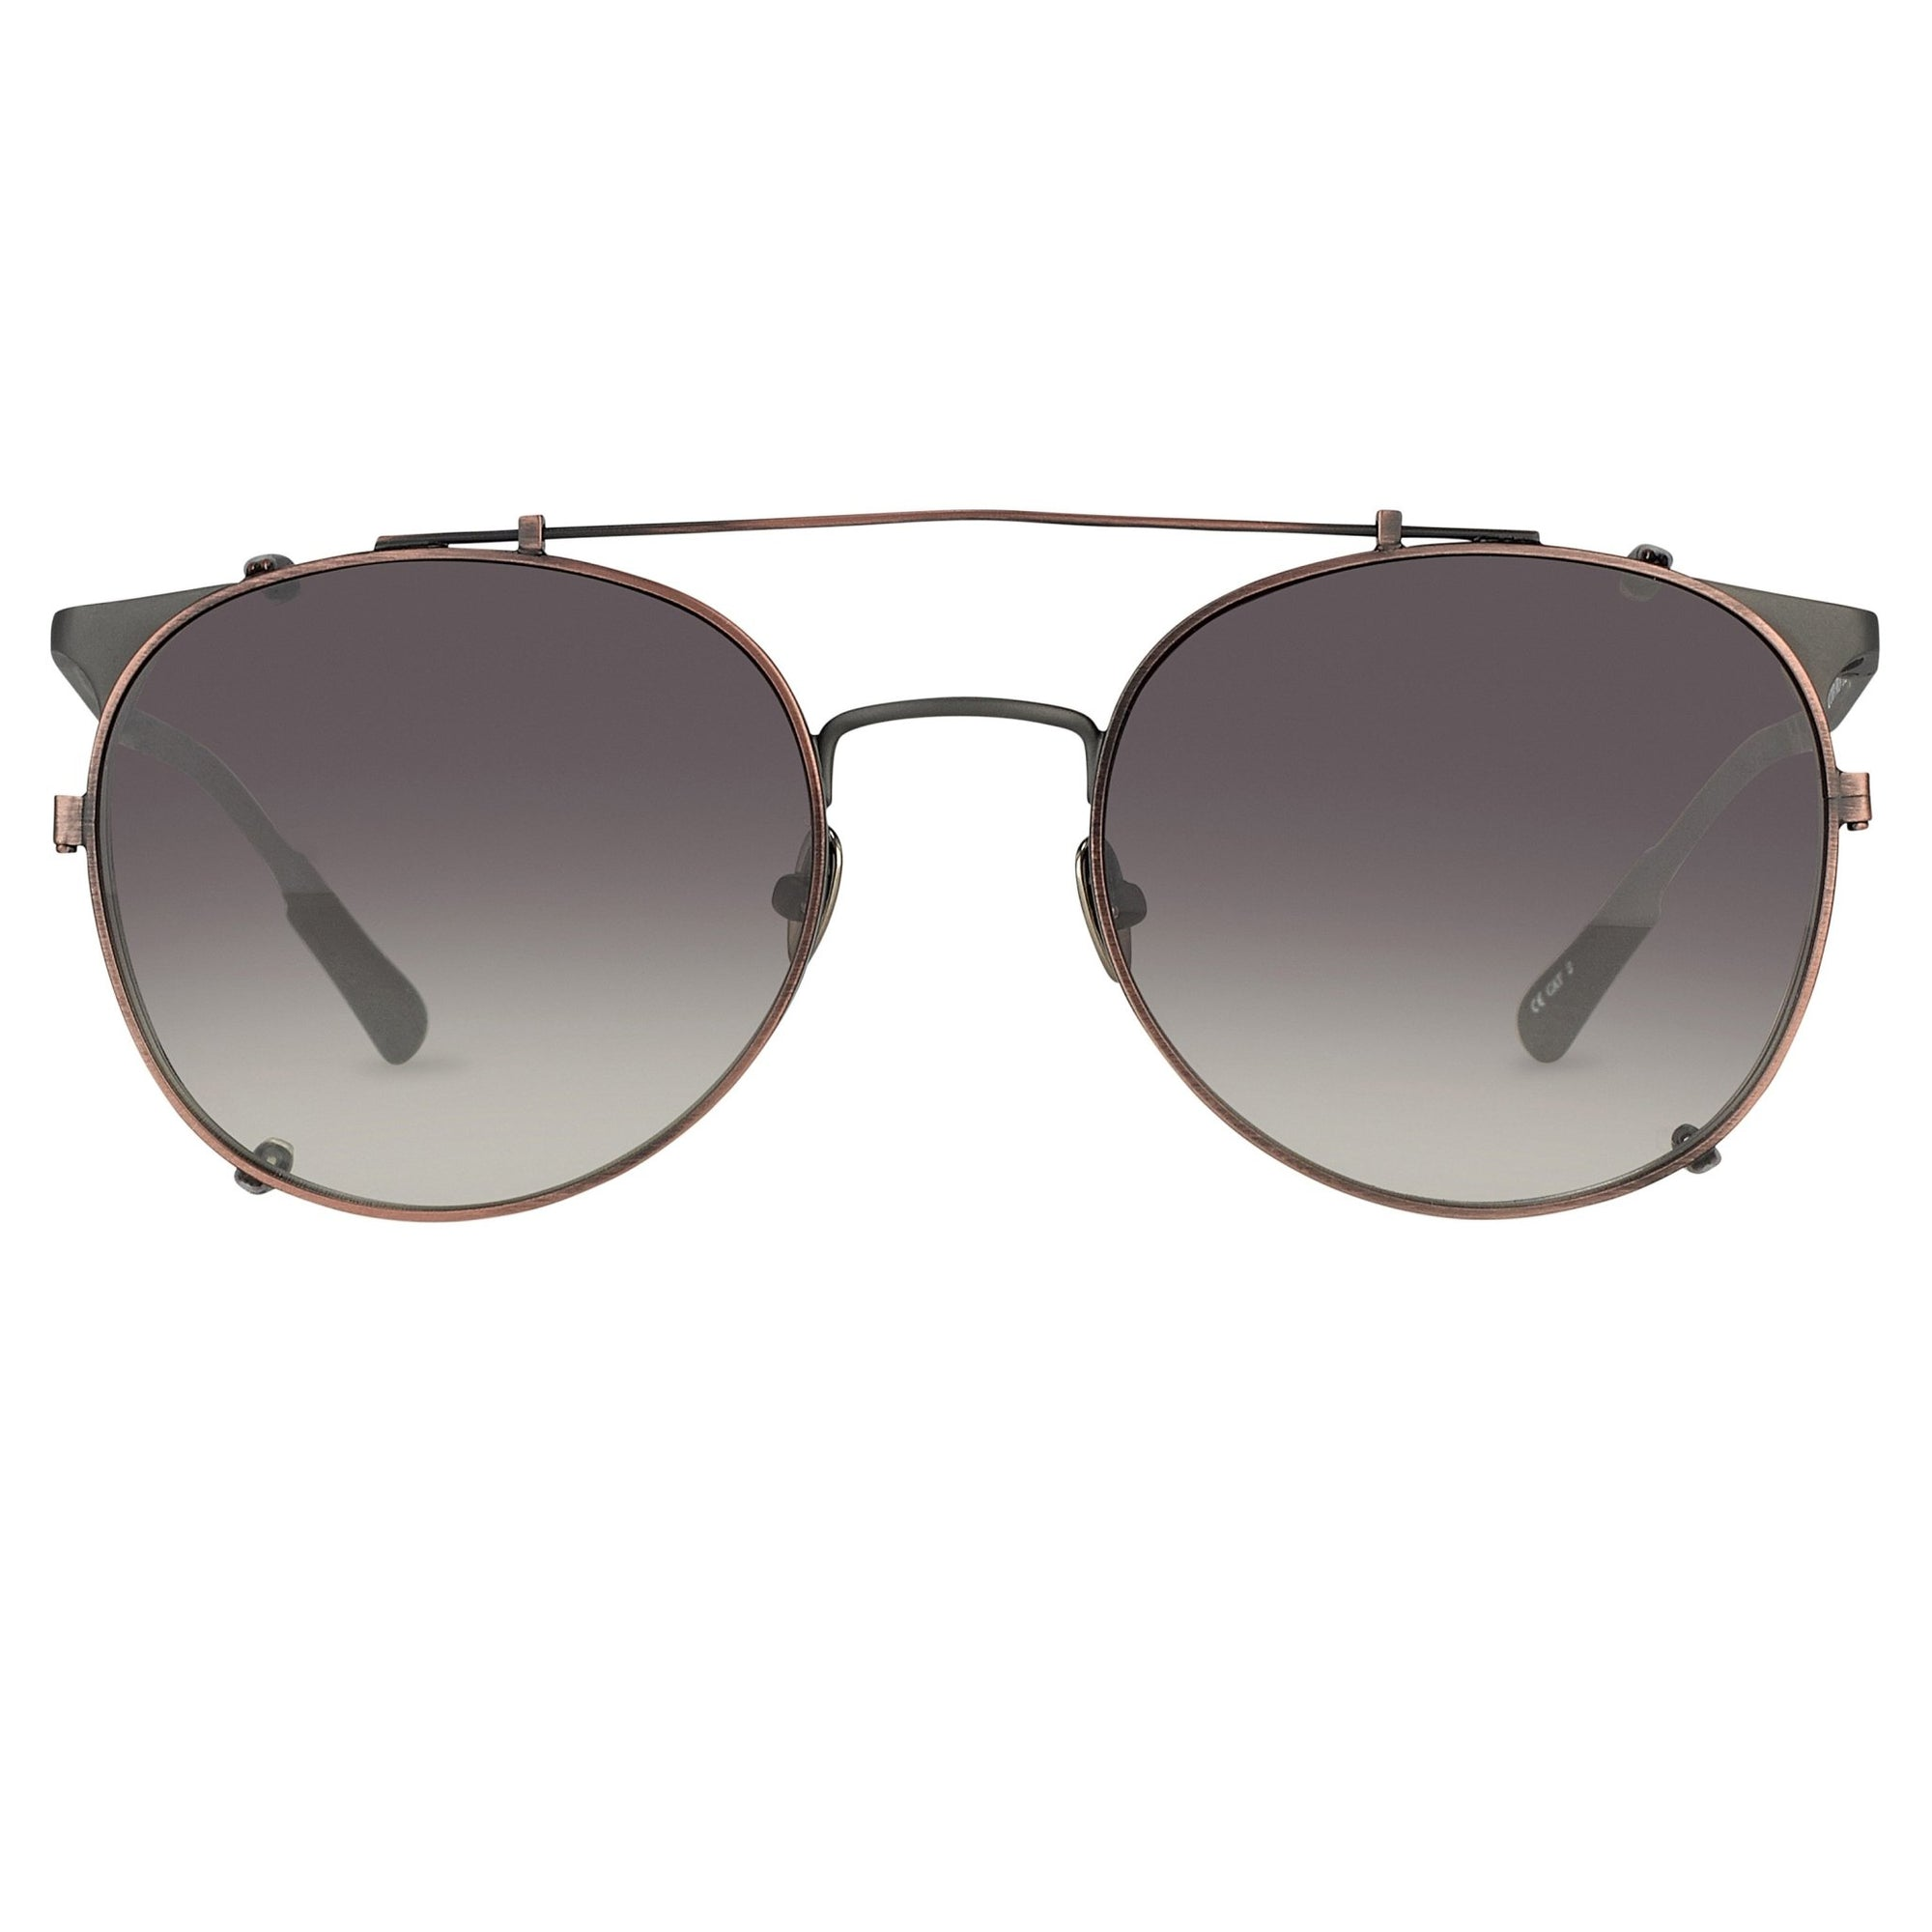 Kris Van Assche Sunglasses Unisex Oval Matte Grey Bronze Clip-On with Grey Graduated Lenses Category 2 - KVA69C3SUN - Watches & Crystals